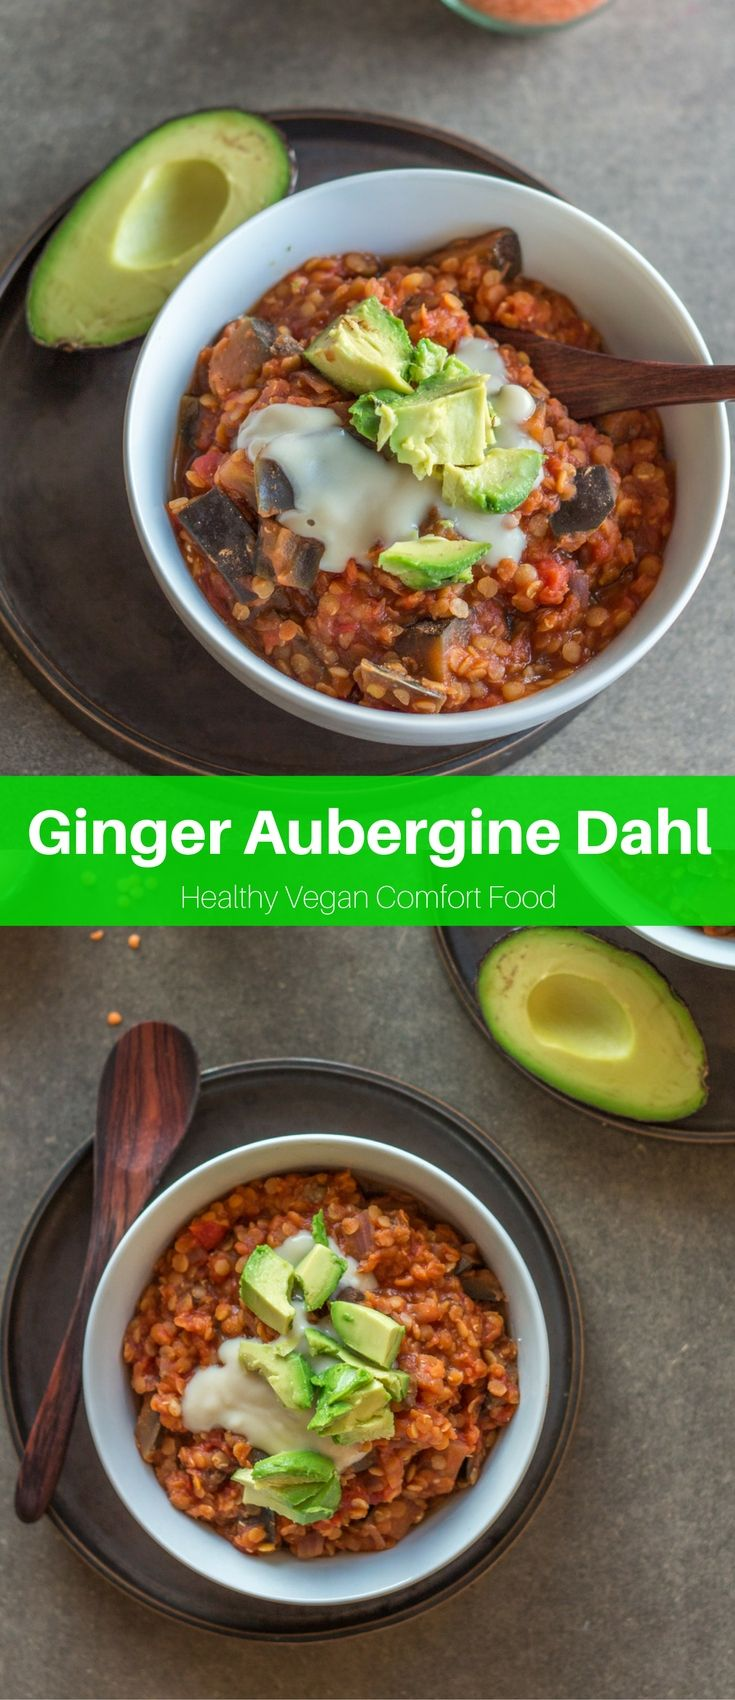 This Ginger Aubergine Dahl is the perfect vegan dinner. It's comforting, healthy, quick, and easy. Ready in only 30 minutes! #vegan #recipes #dinner #healthy #indian